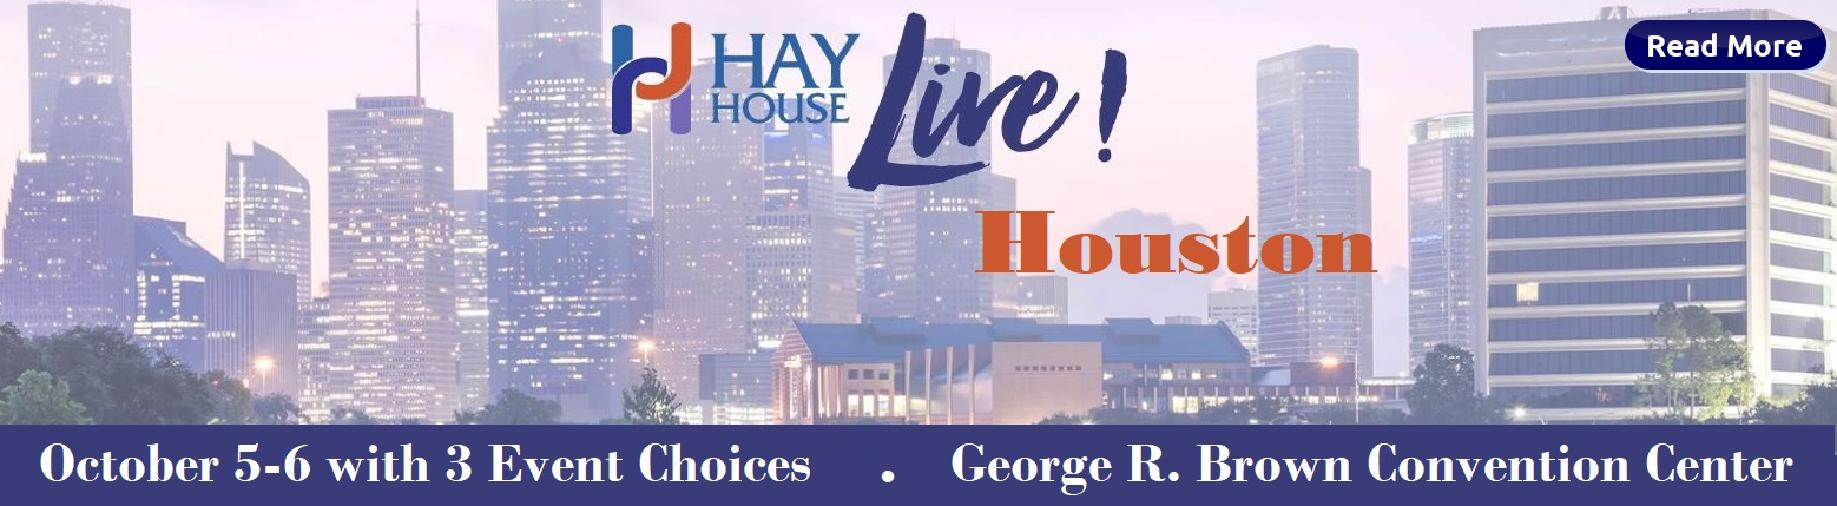 Register now for Hay House Live in Houston.